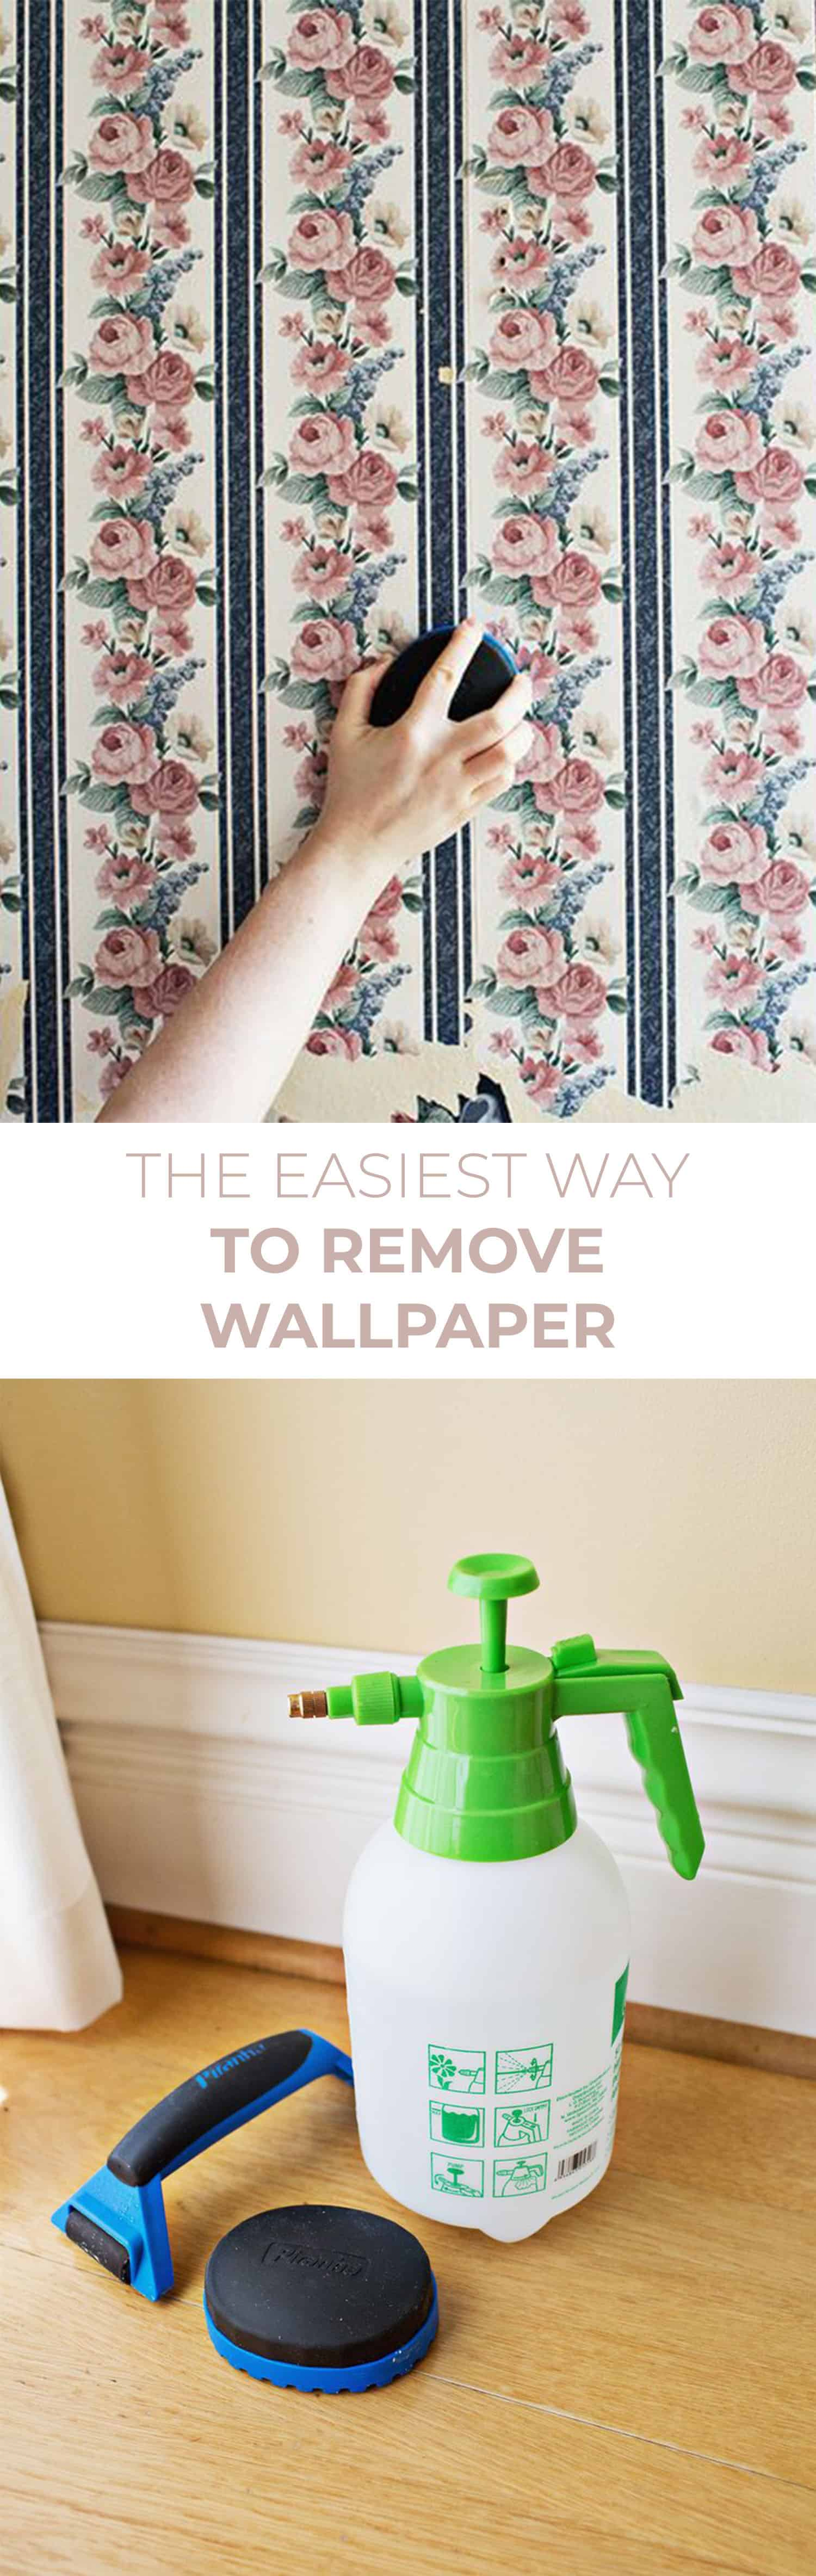 Wallpaper removal is not as scary as it sounds! We actually had fun working on our walls and getting them ready for painting. Any wallpaper removal tips ...